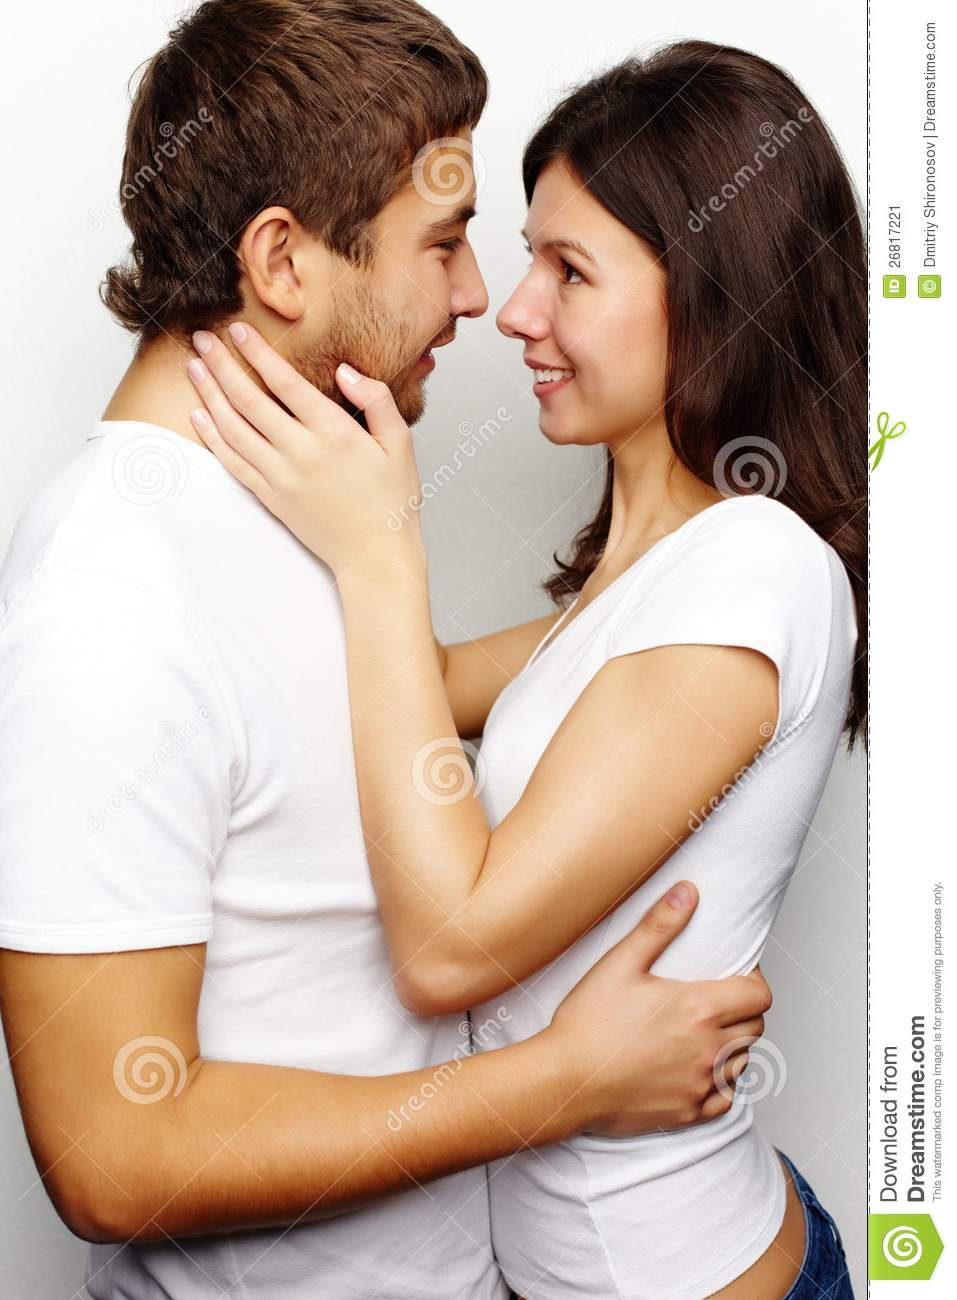 Thailand dating service